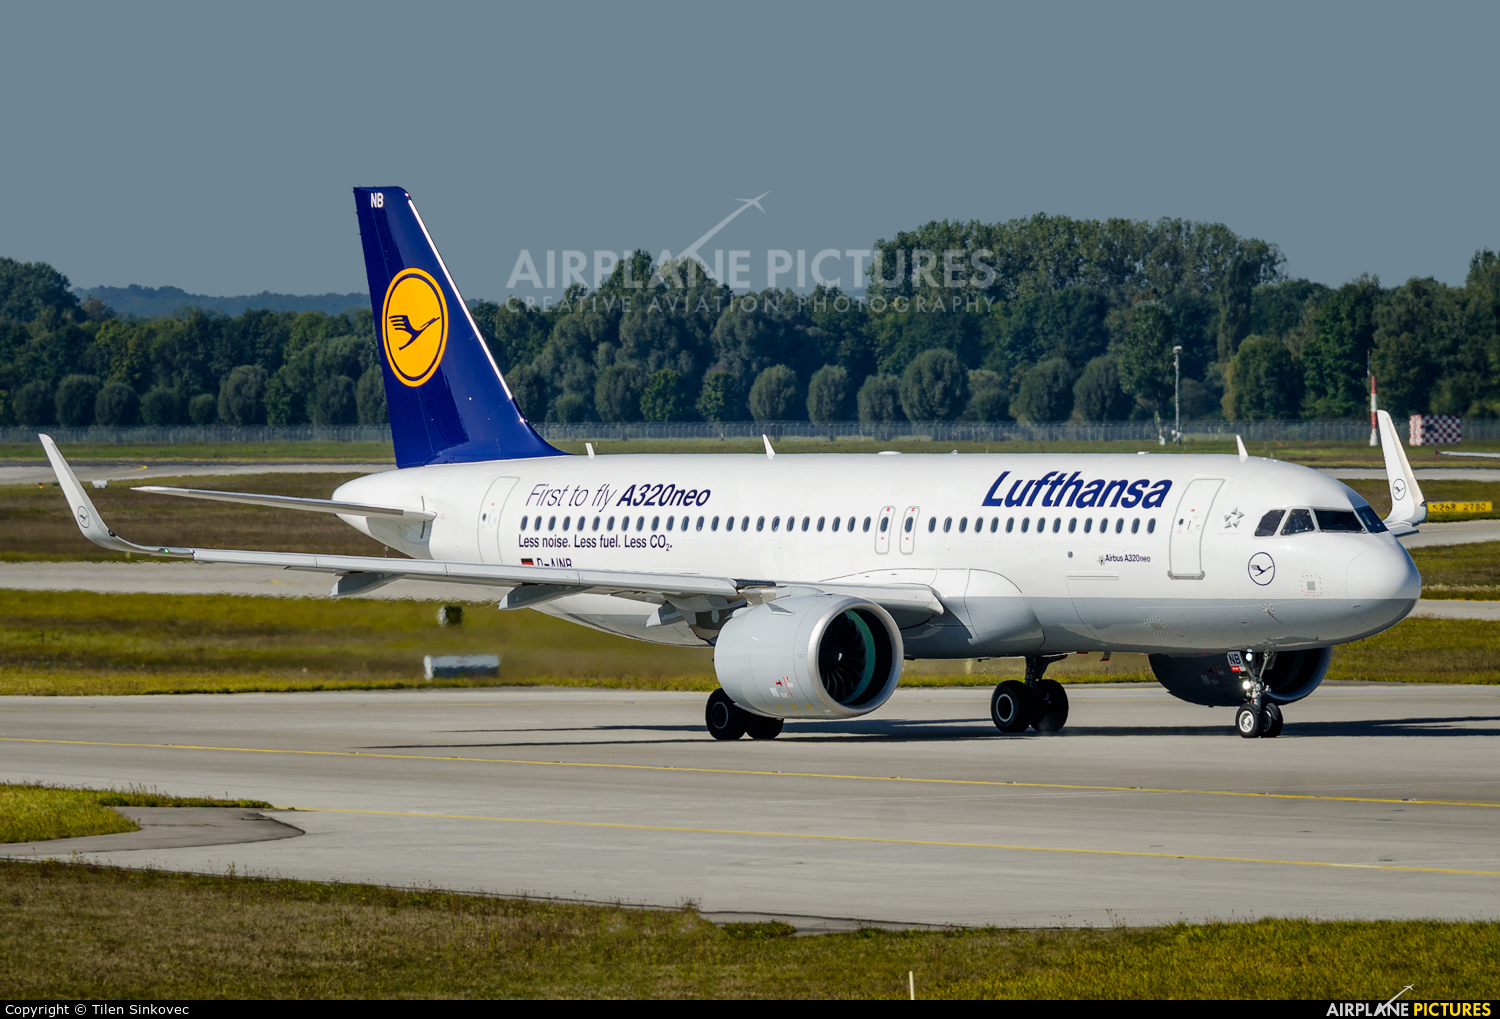 Lufthansa D-AINB aircraft at Munich